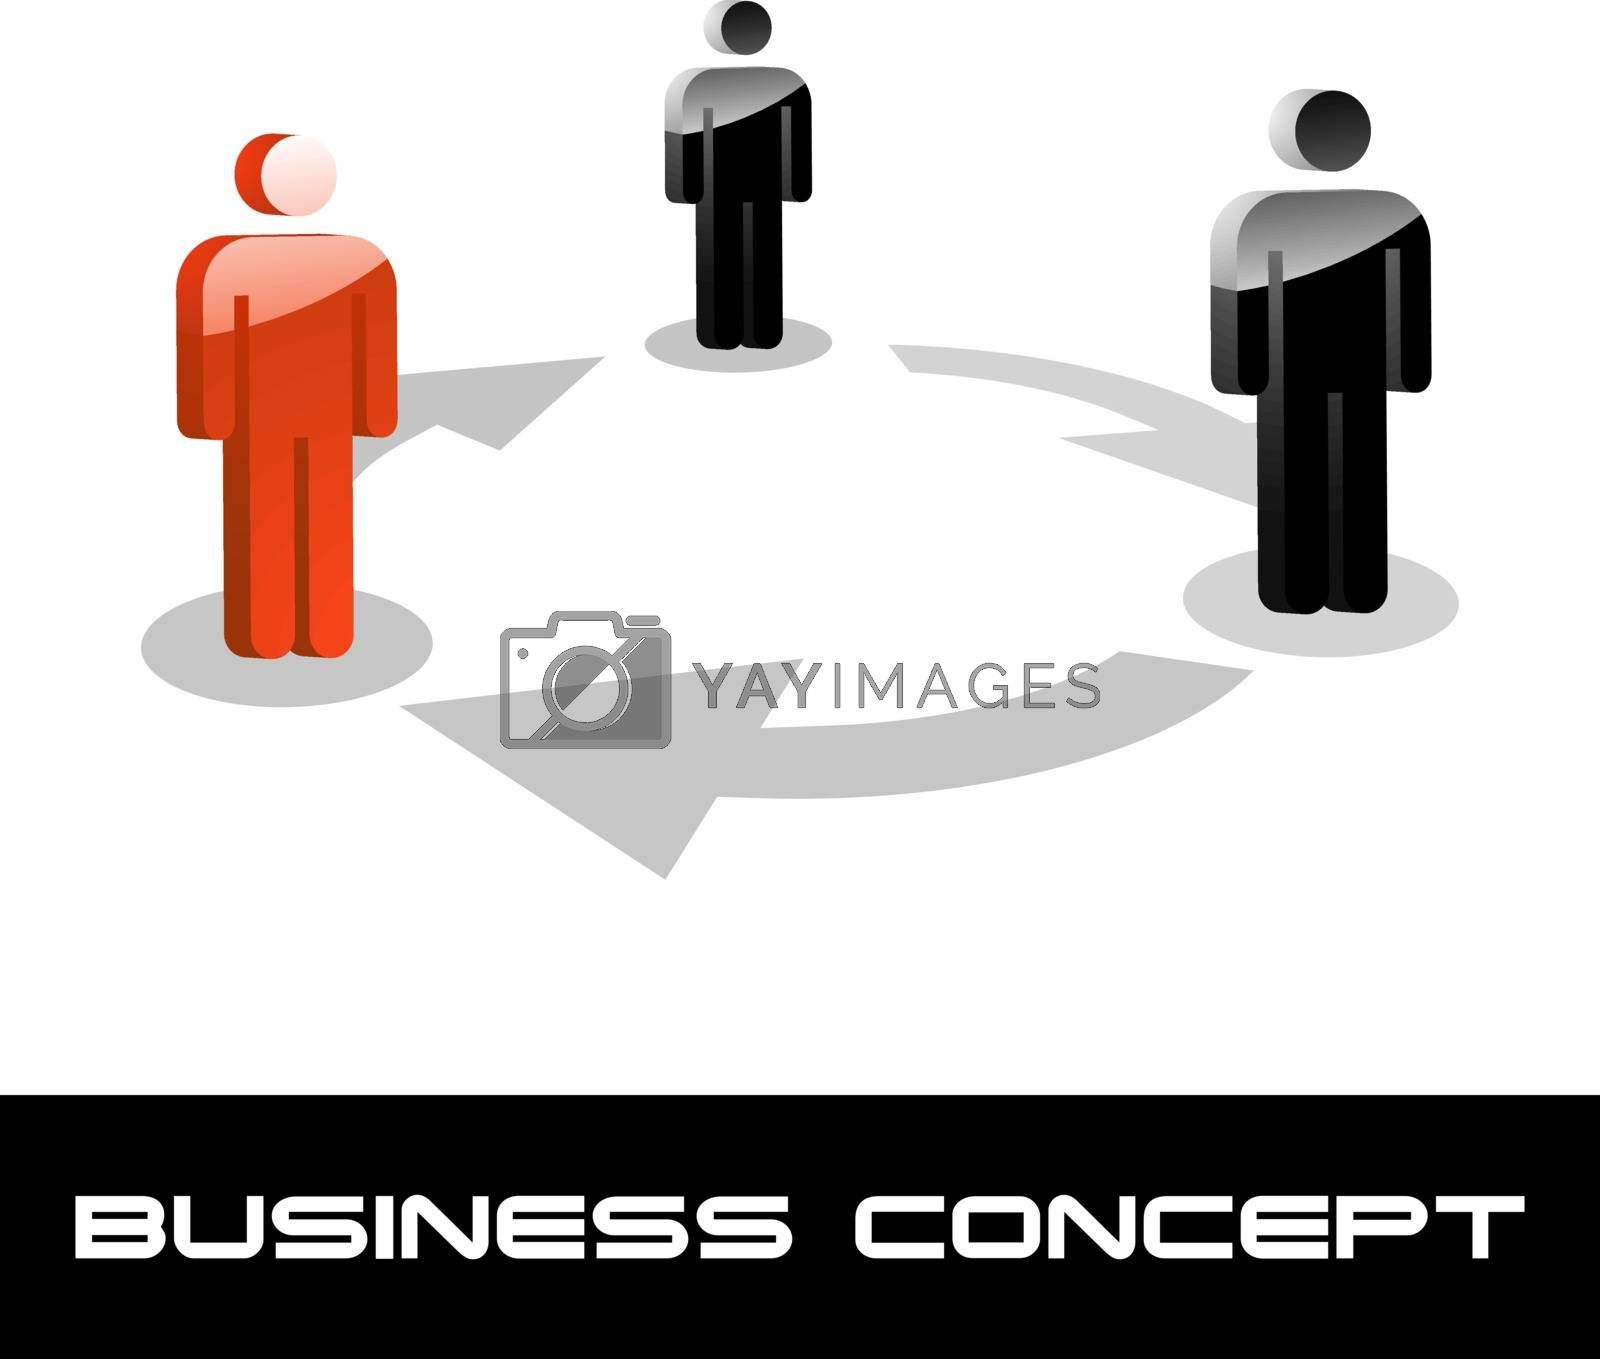 Business concept illustration. Usable for different business design.